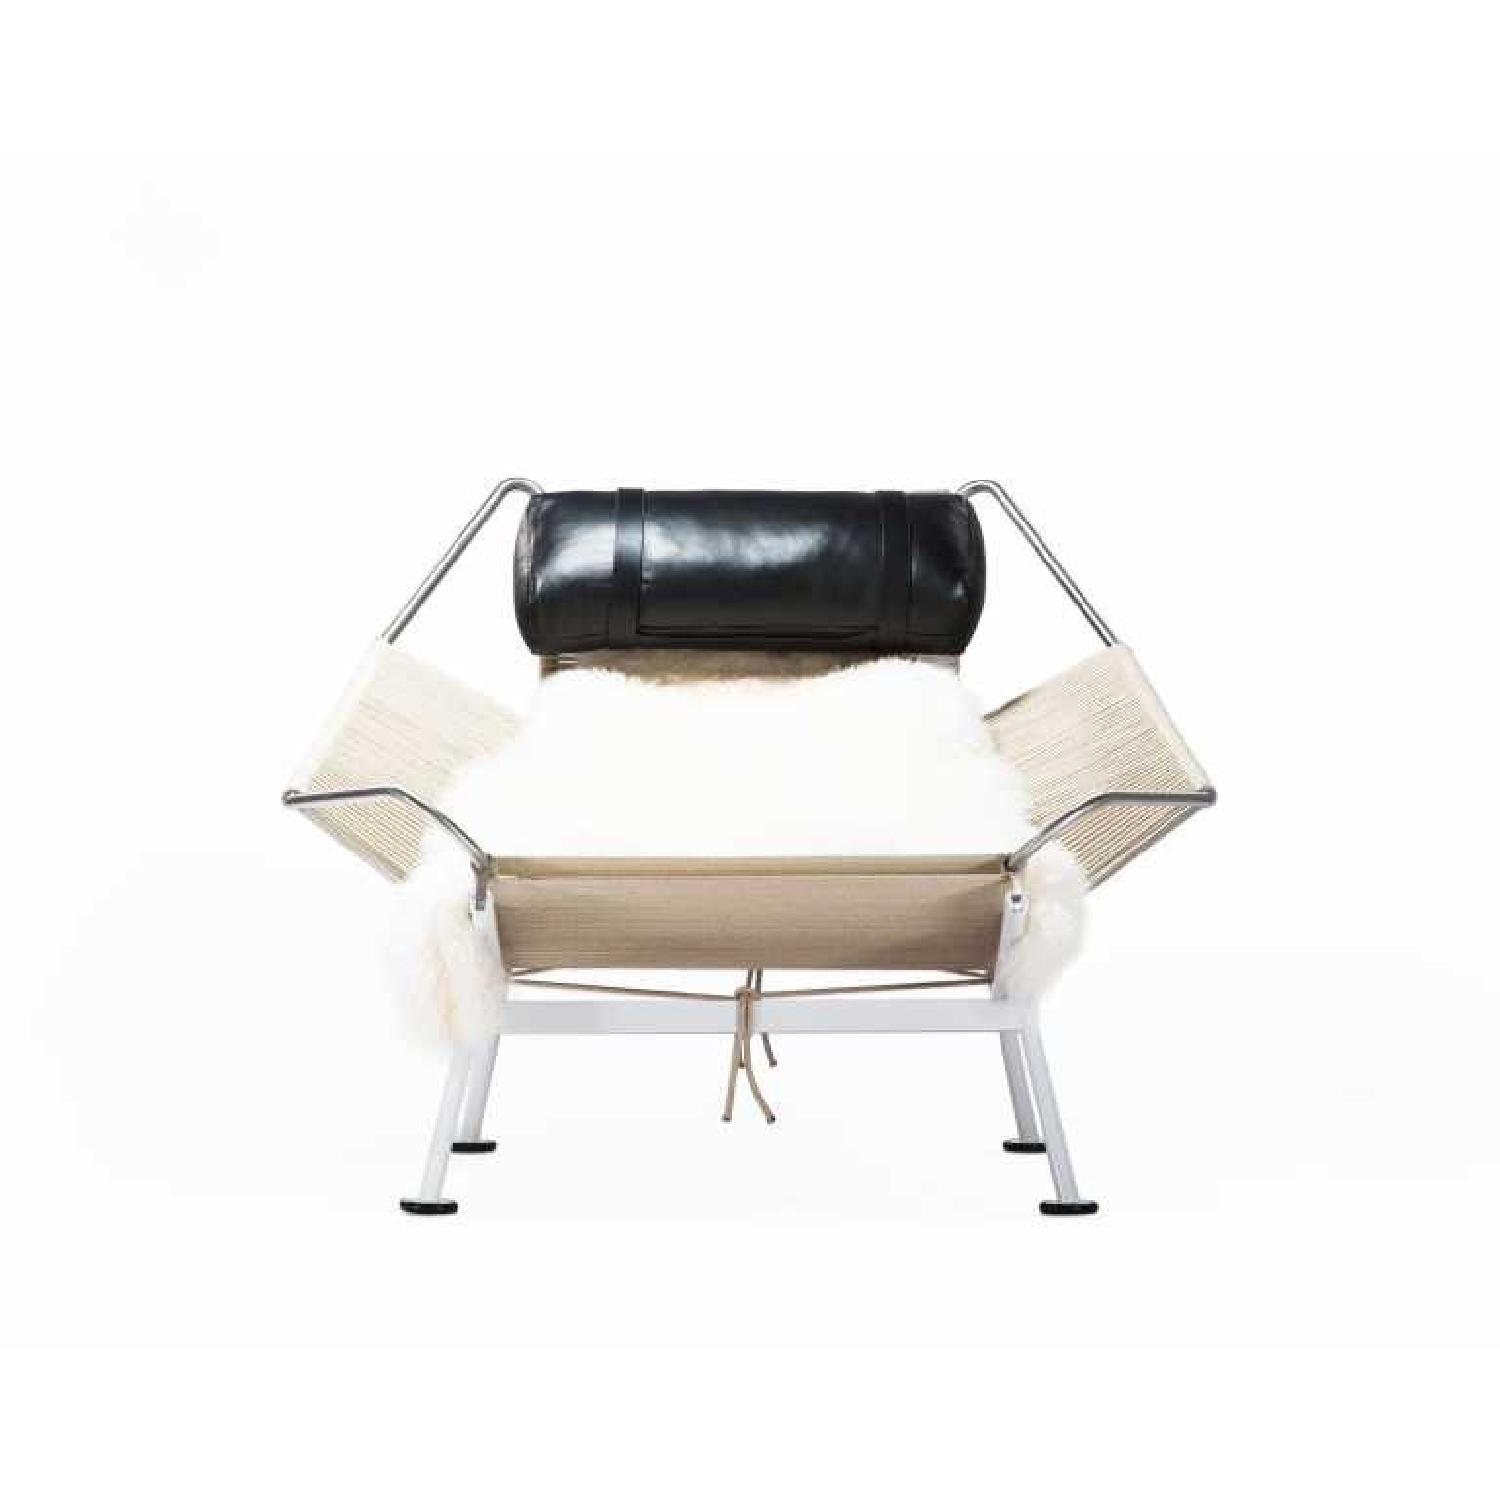 Rove Concepts Flag Halyard Chair - image-14